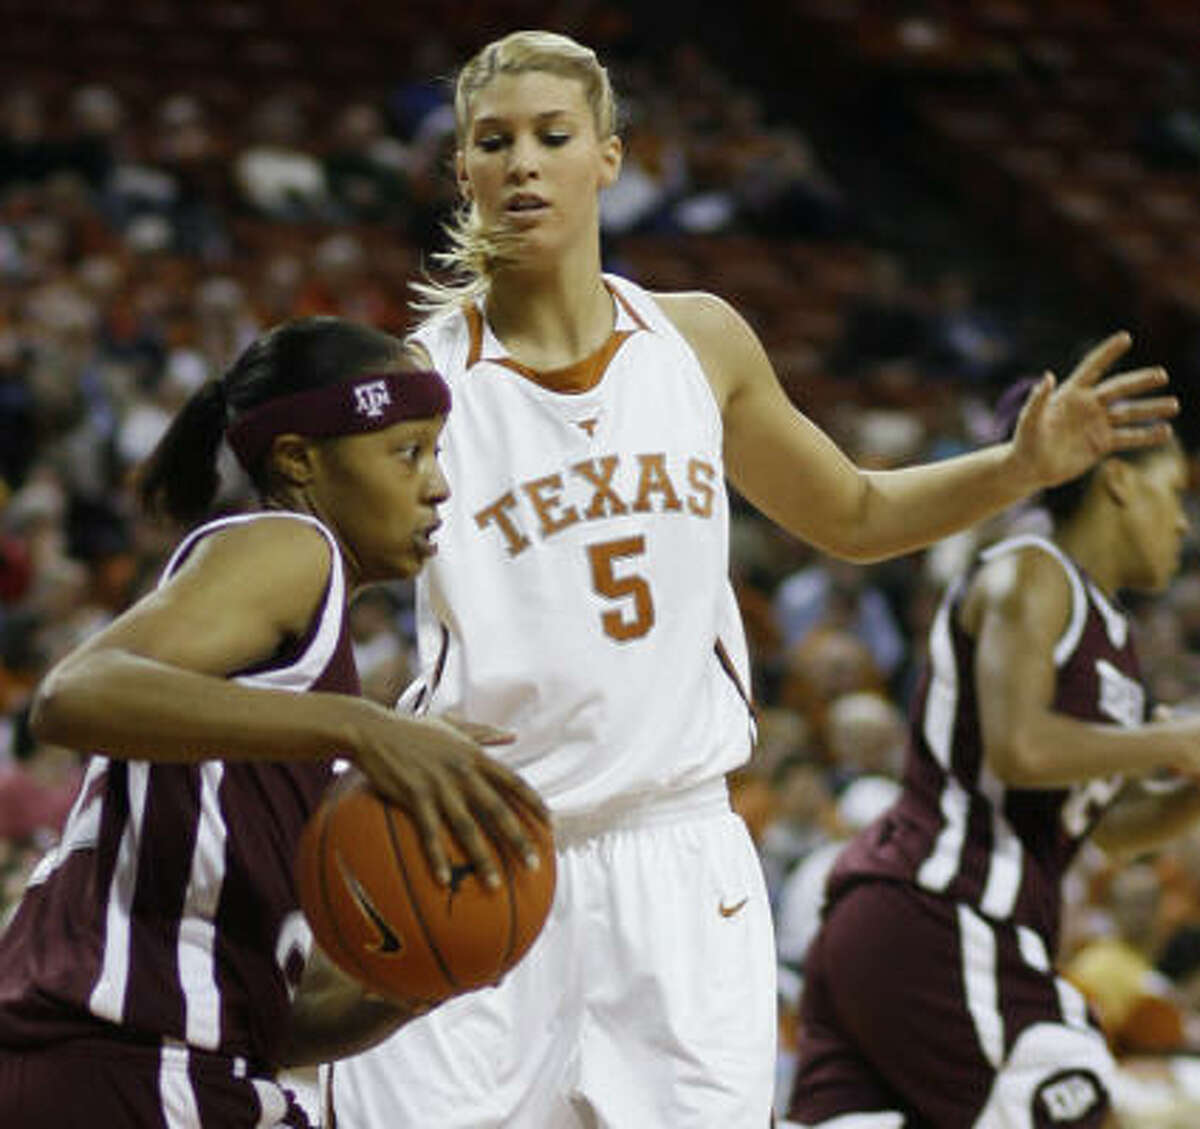 Texas A&M forward Tanisha Smith, left, tries to get by Texas guard Kathleen Nash after pulling in a rebound in the first half.